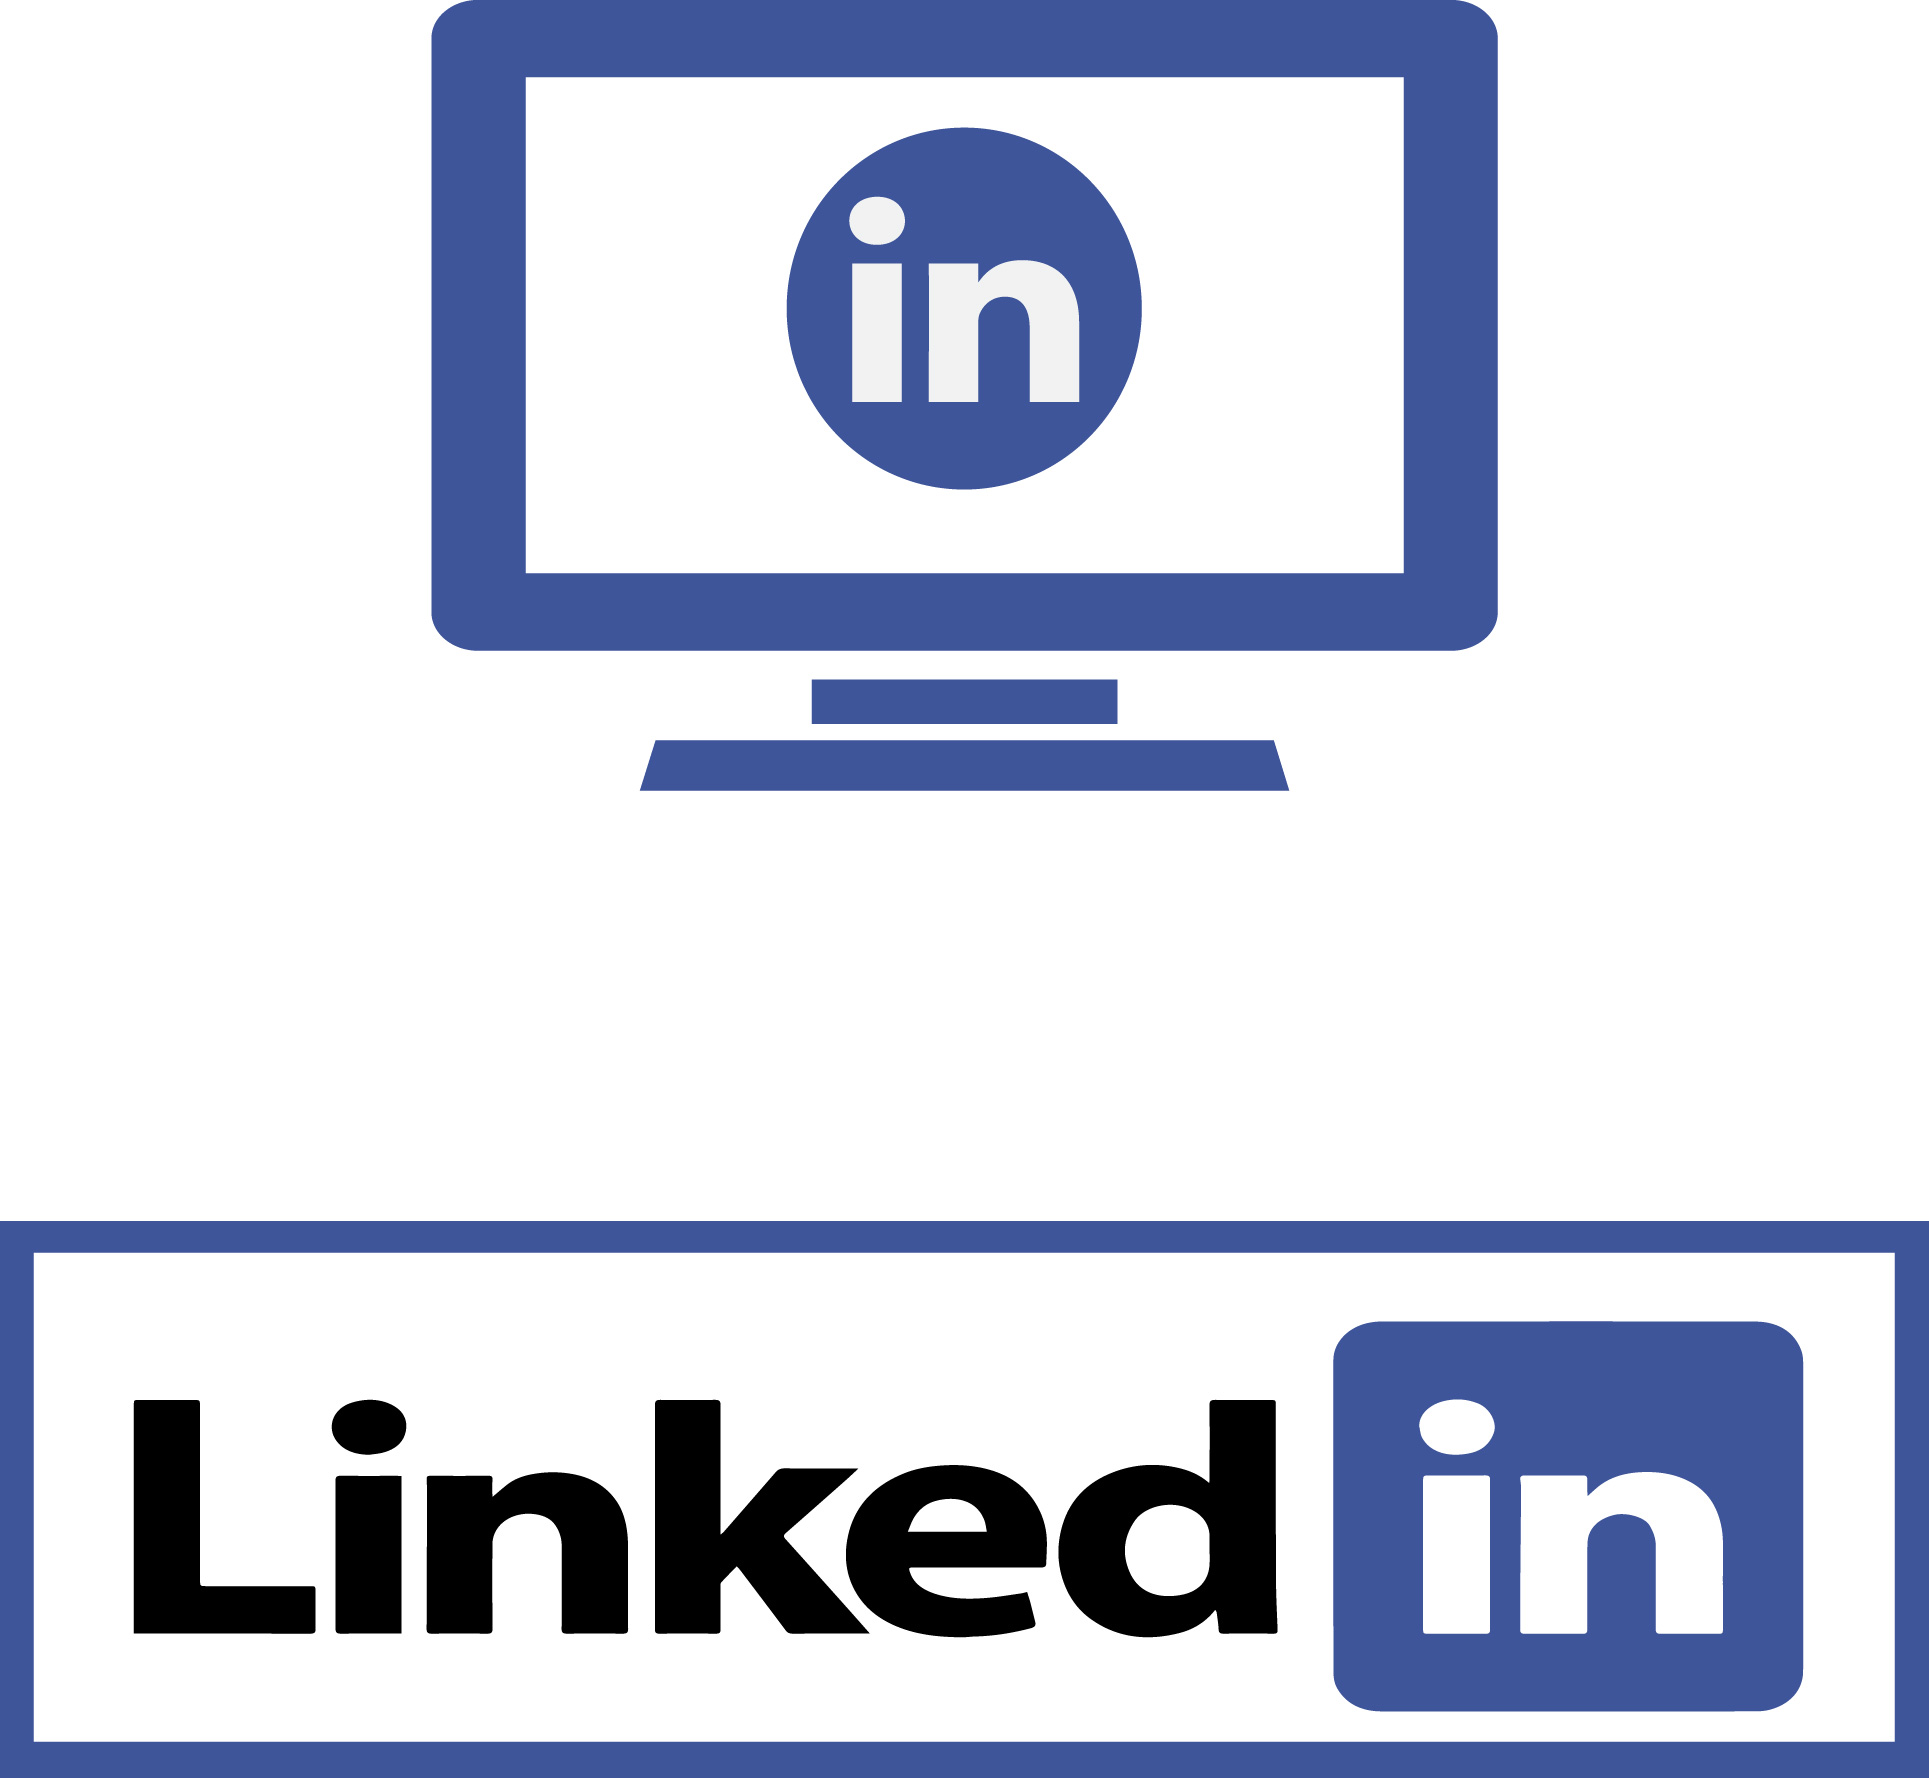 1 linkedin usa verified account with 1500 connection